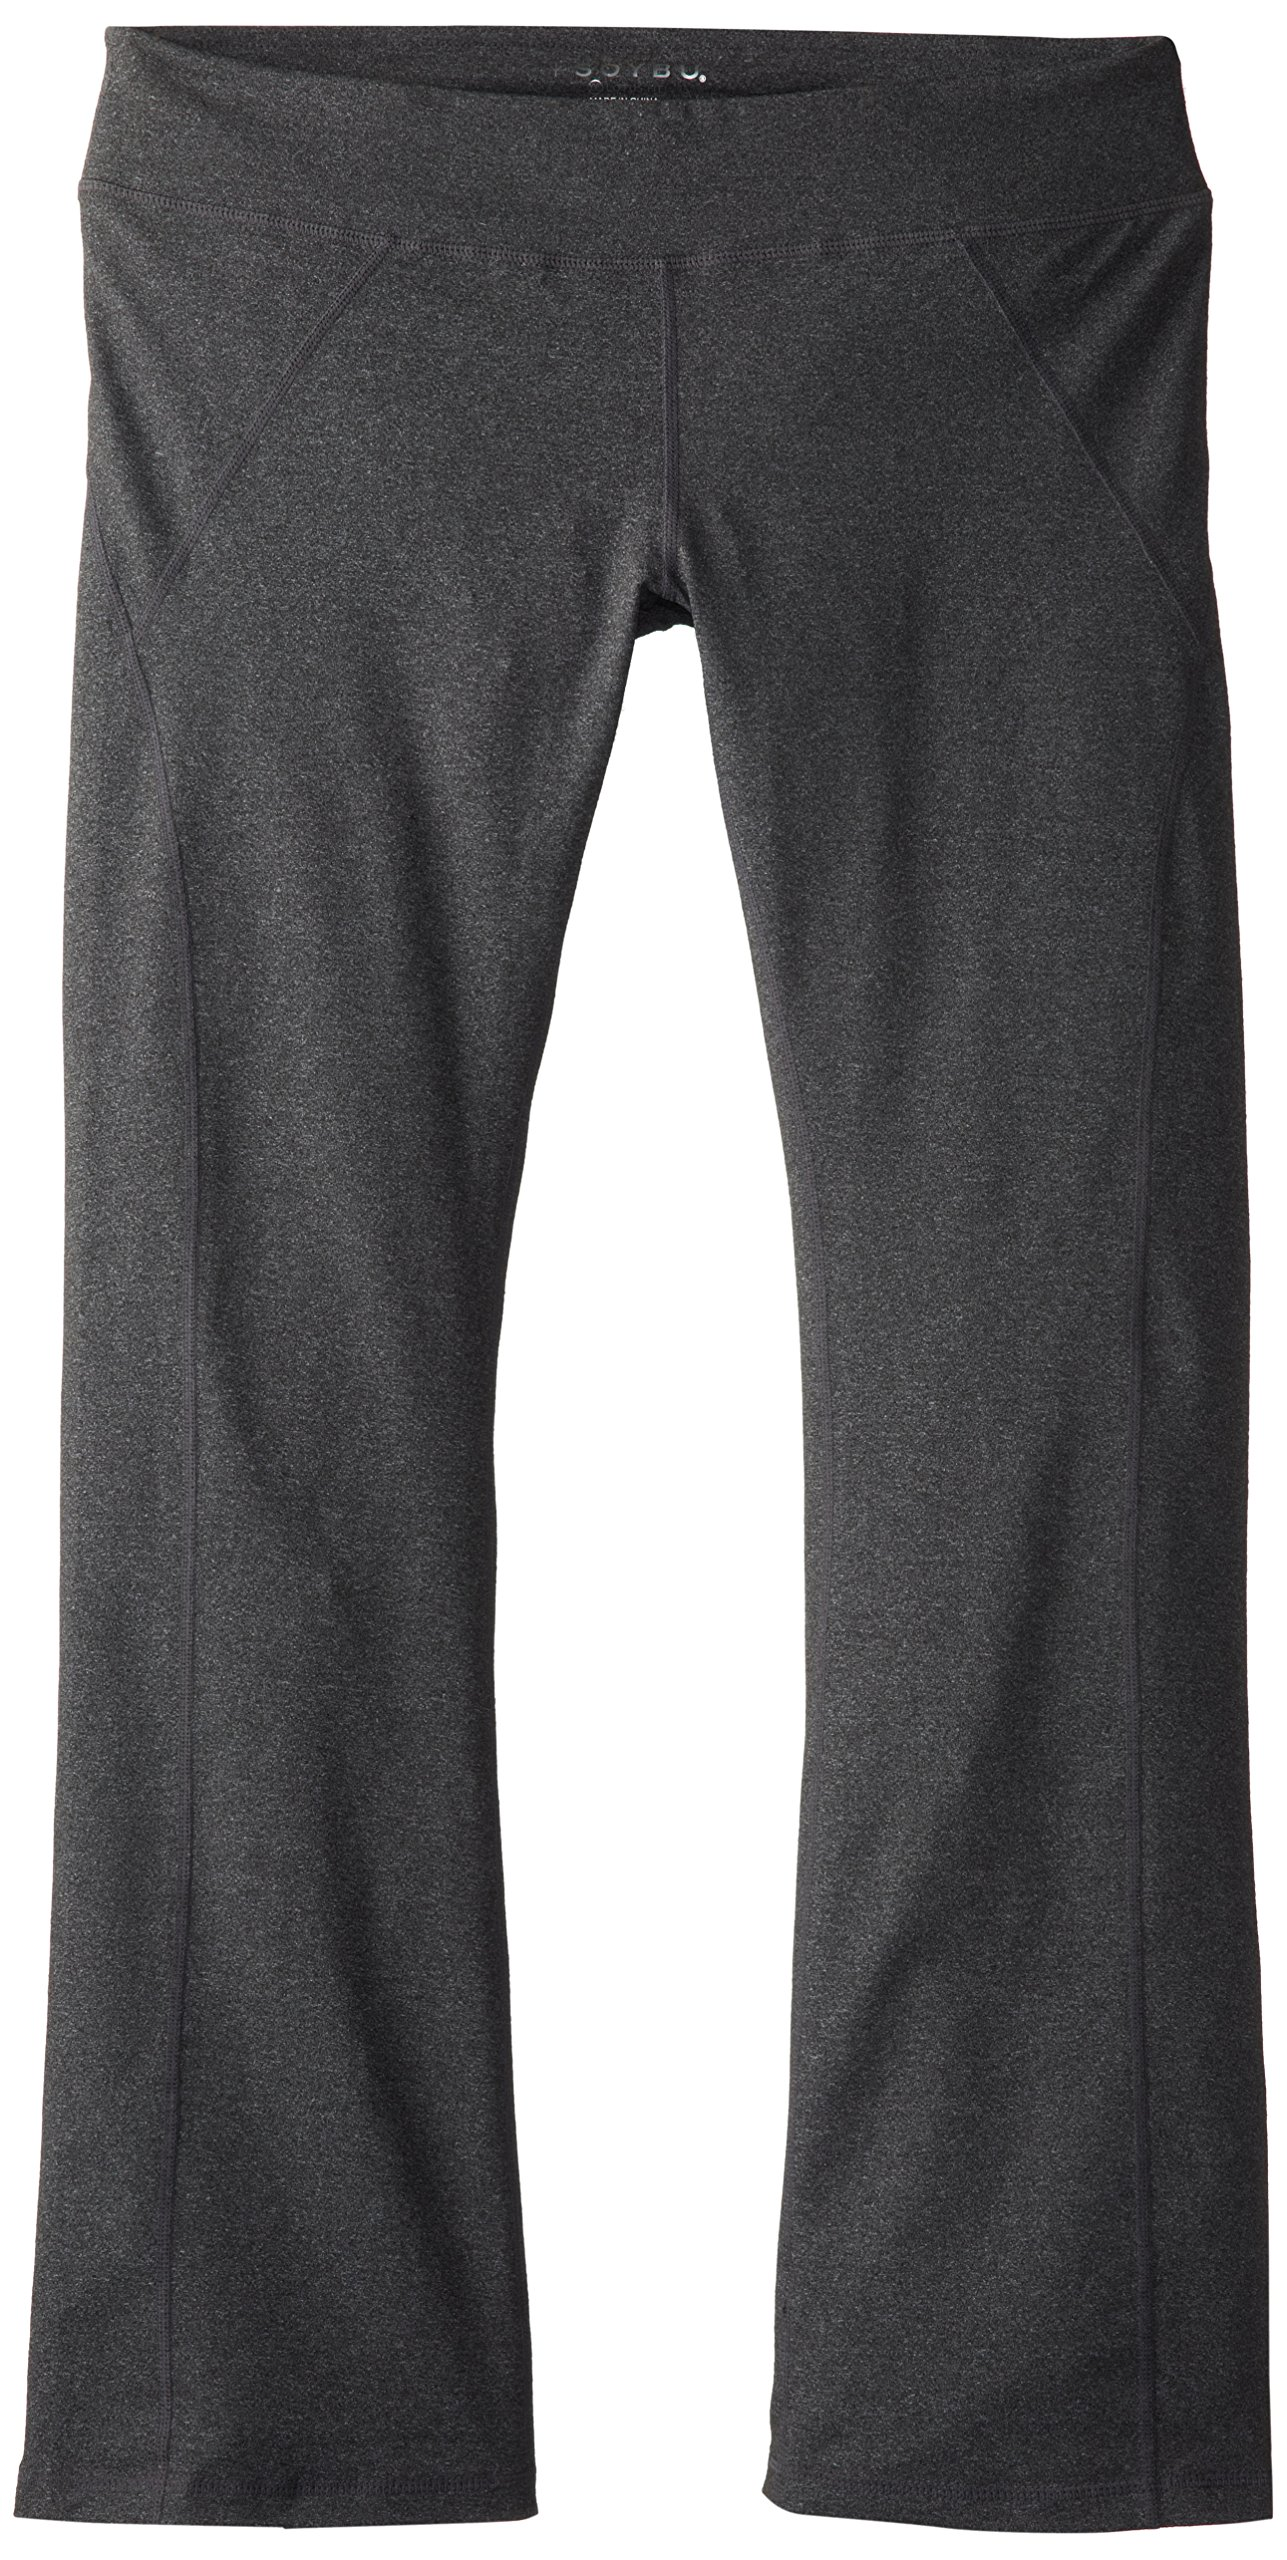 Soybu Women's Killer Caboose Pant-Tall, Charcoal, X-Small